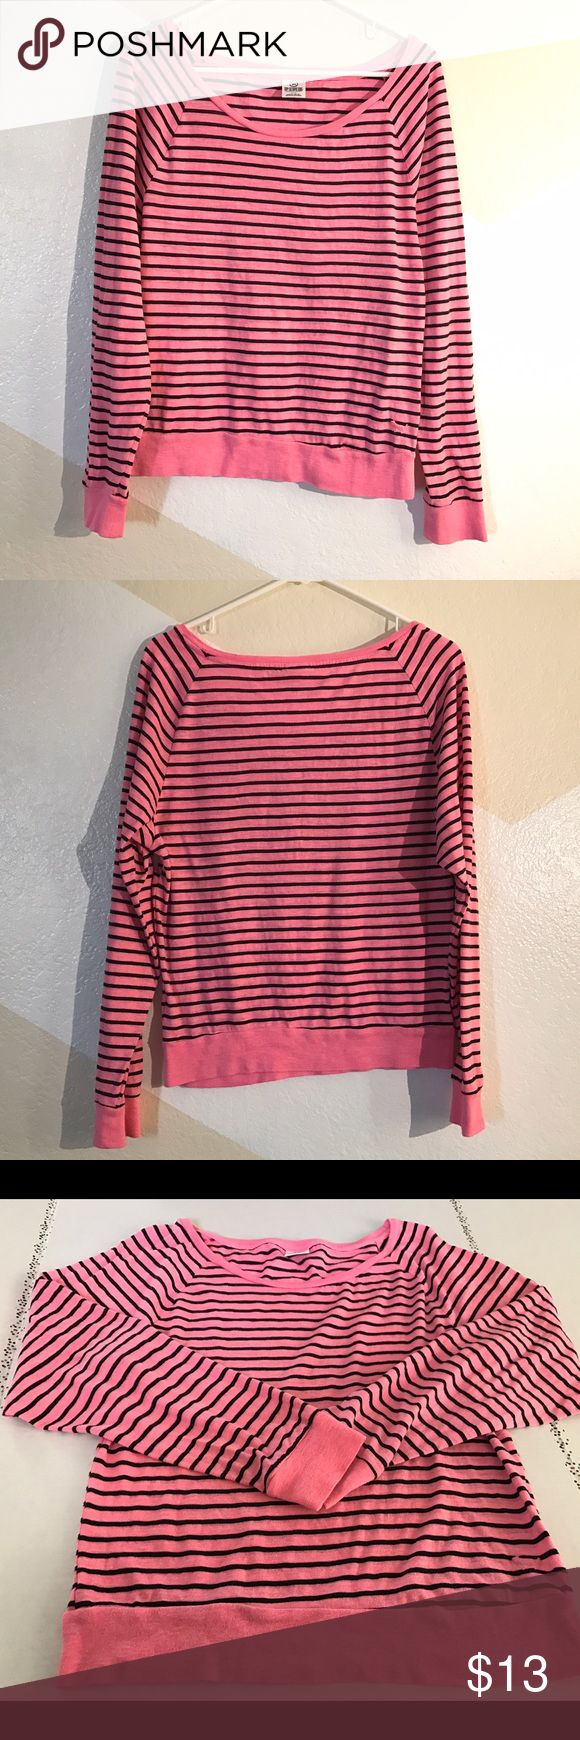 Victoria's Secret PINK Long Sleeve Top Size S Pre-owned excellent condition Victoria's Secret PINK striped long sleeve top. Size S. ❌trades❌ please don't ask. All reasonable offers will be considered. PINK Victoria's Secret Tops